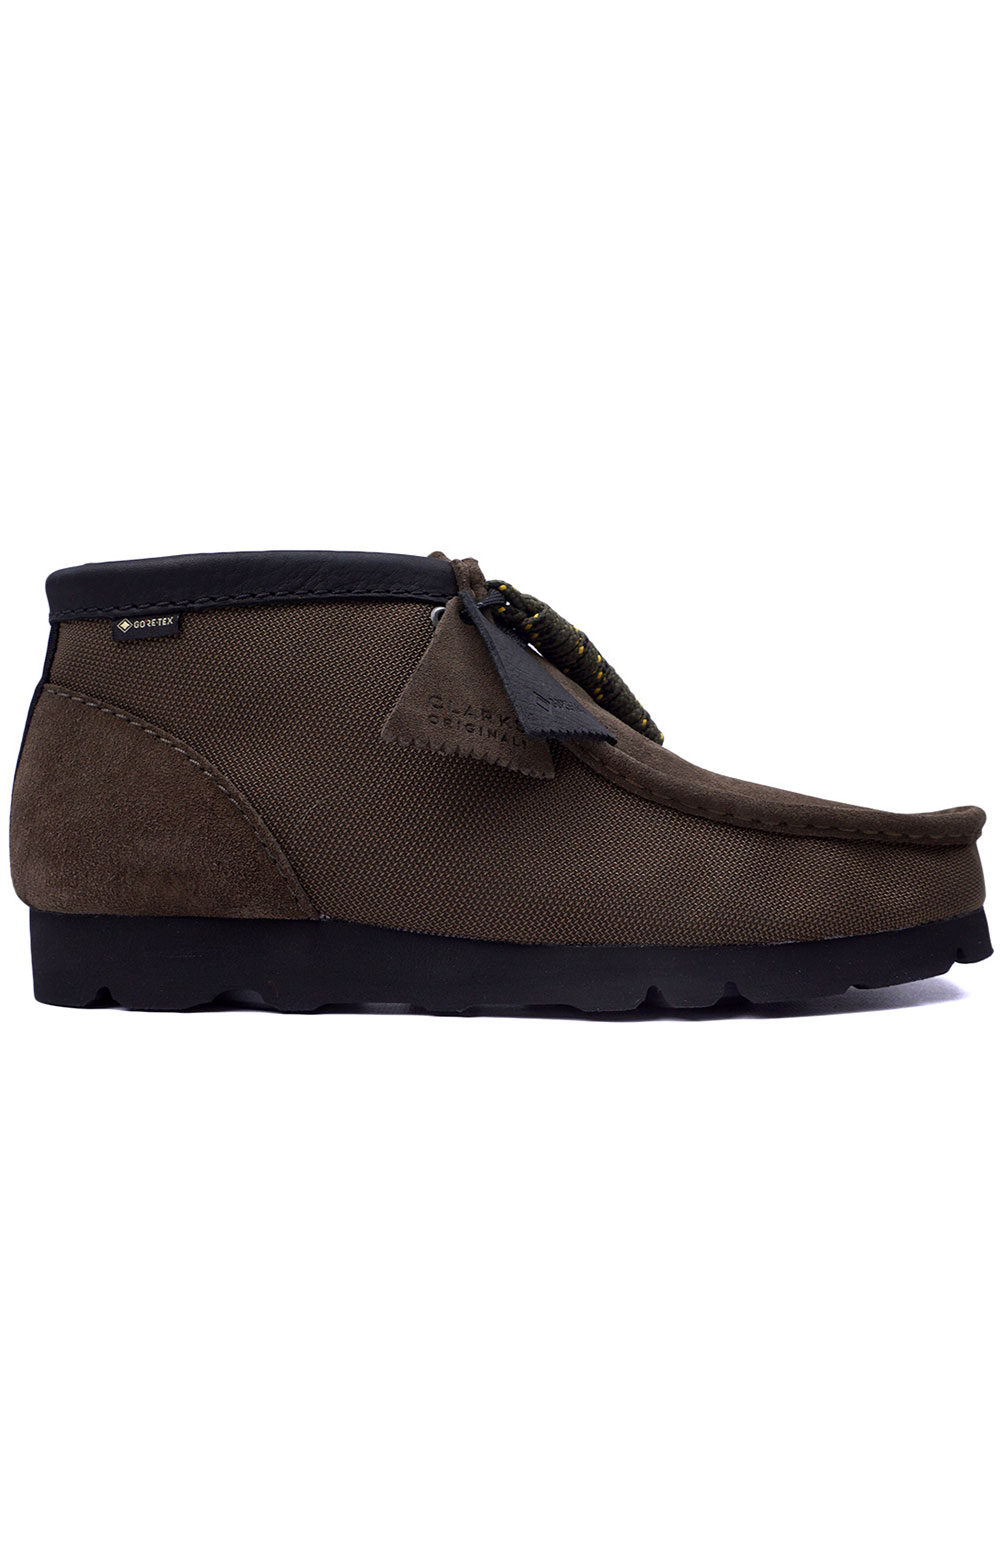 (26154788) Wallabee GTX Boots - Olive Textile